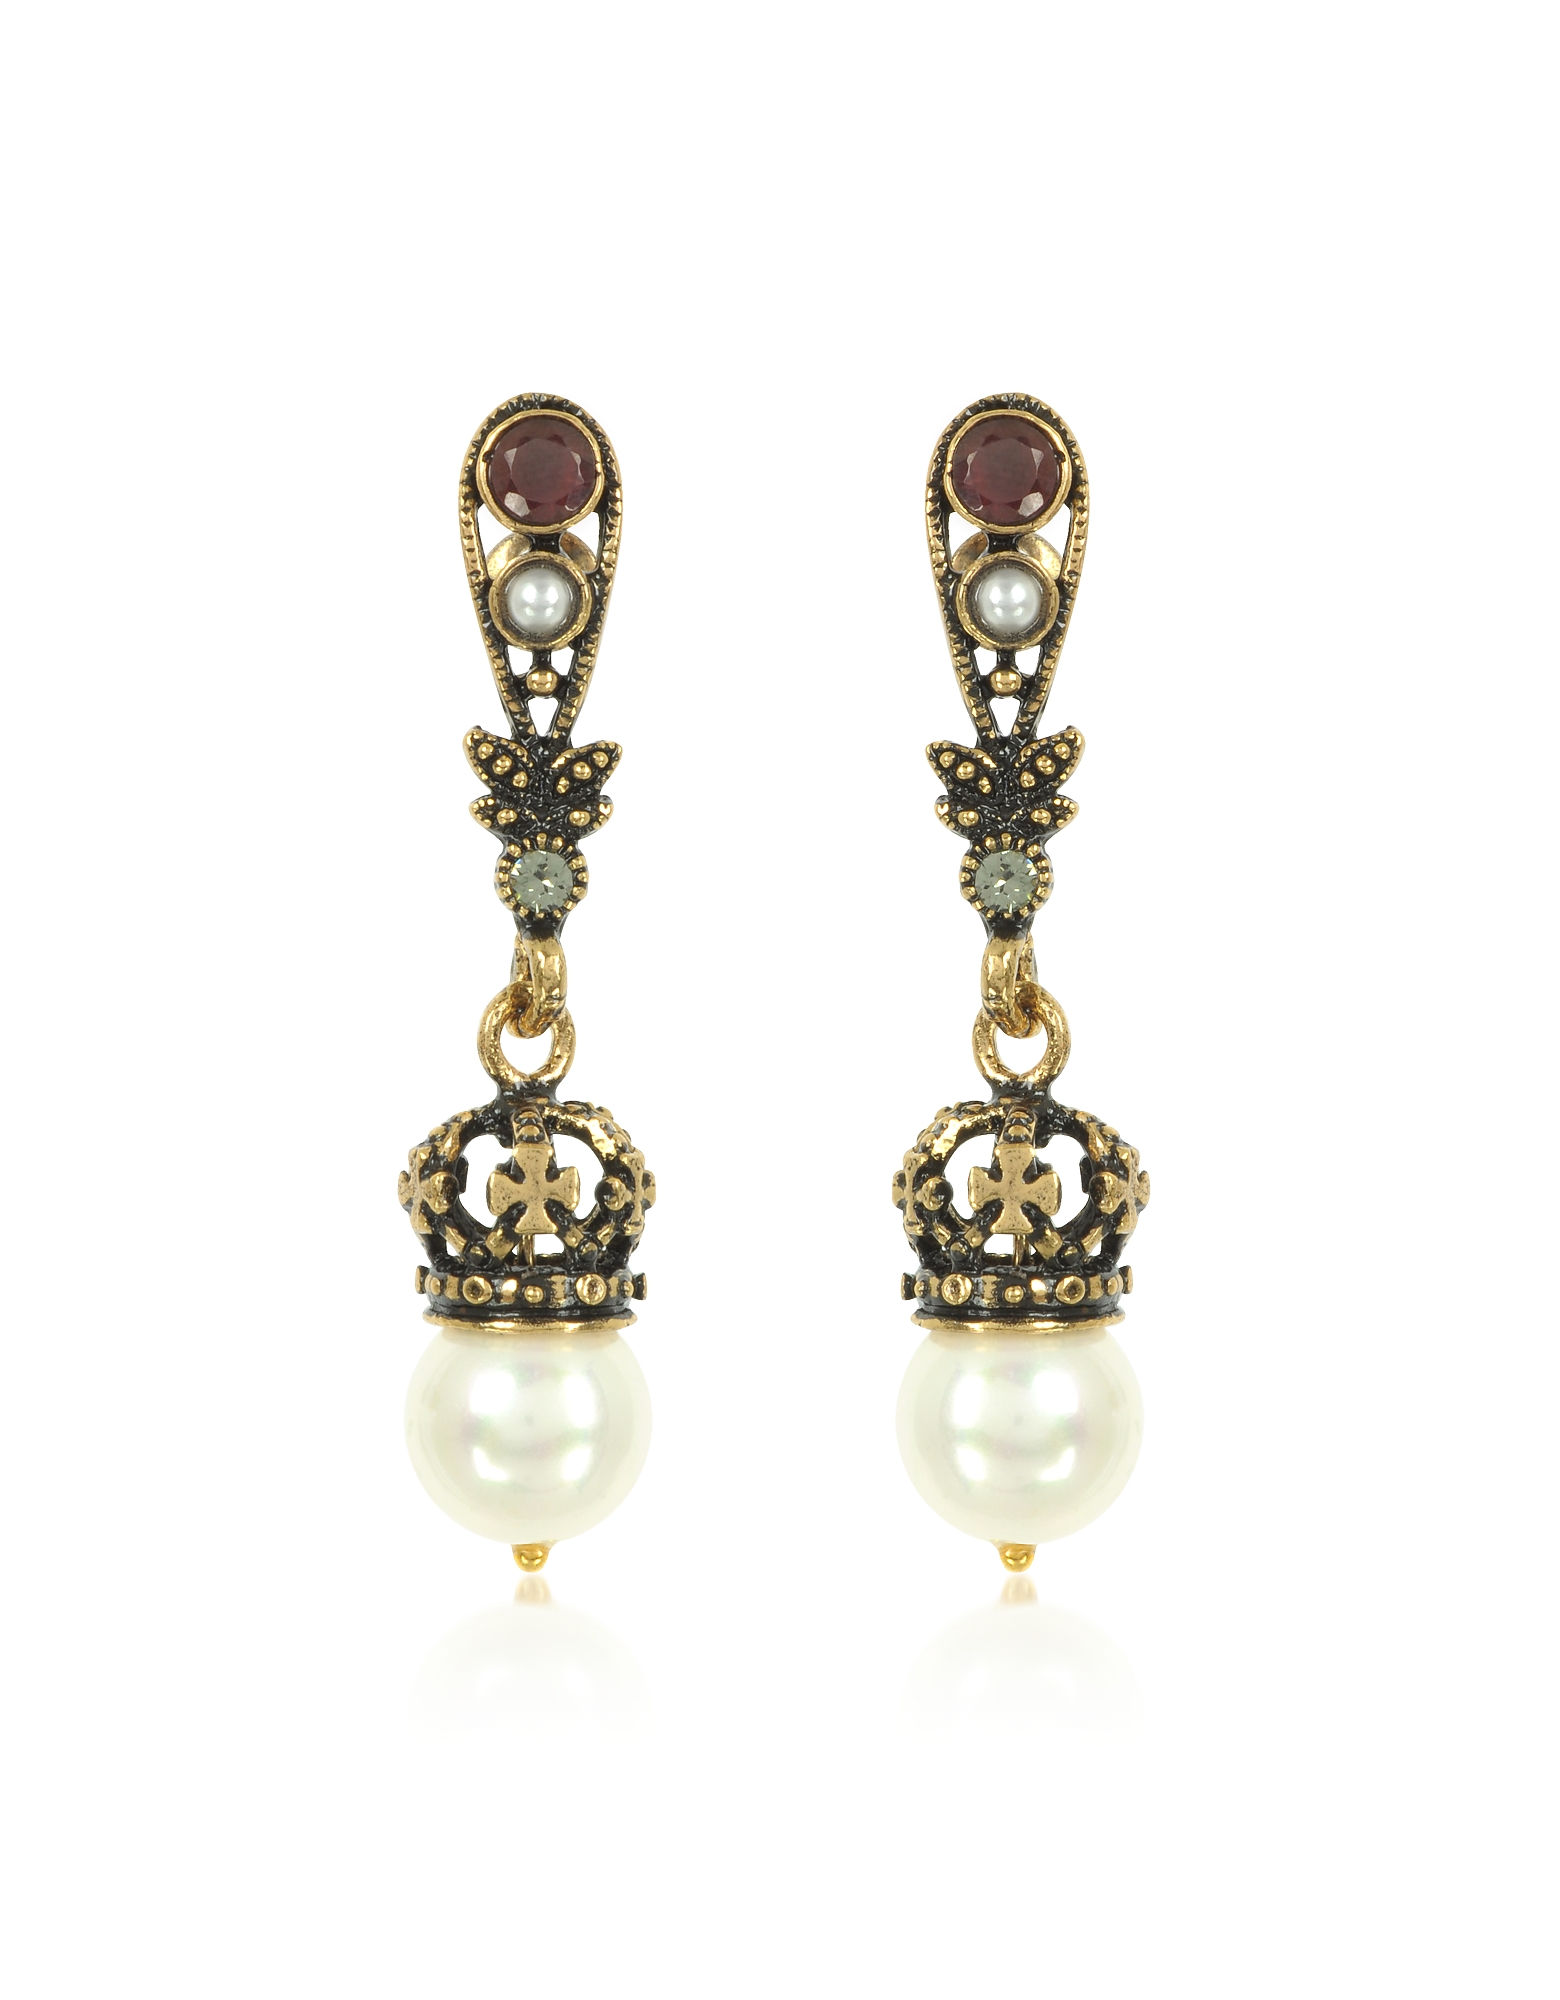 Drop Crown Earrings w/Pearls. Drop Crown Earrings w/Pearls, are made for a queen that feature teardrop base with garnet and pearl, and dangling pearl